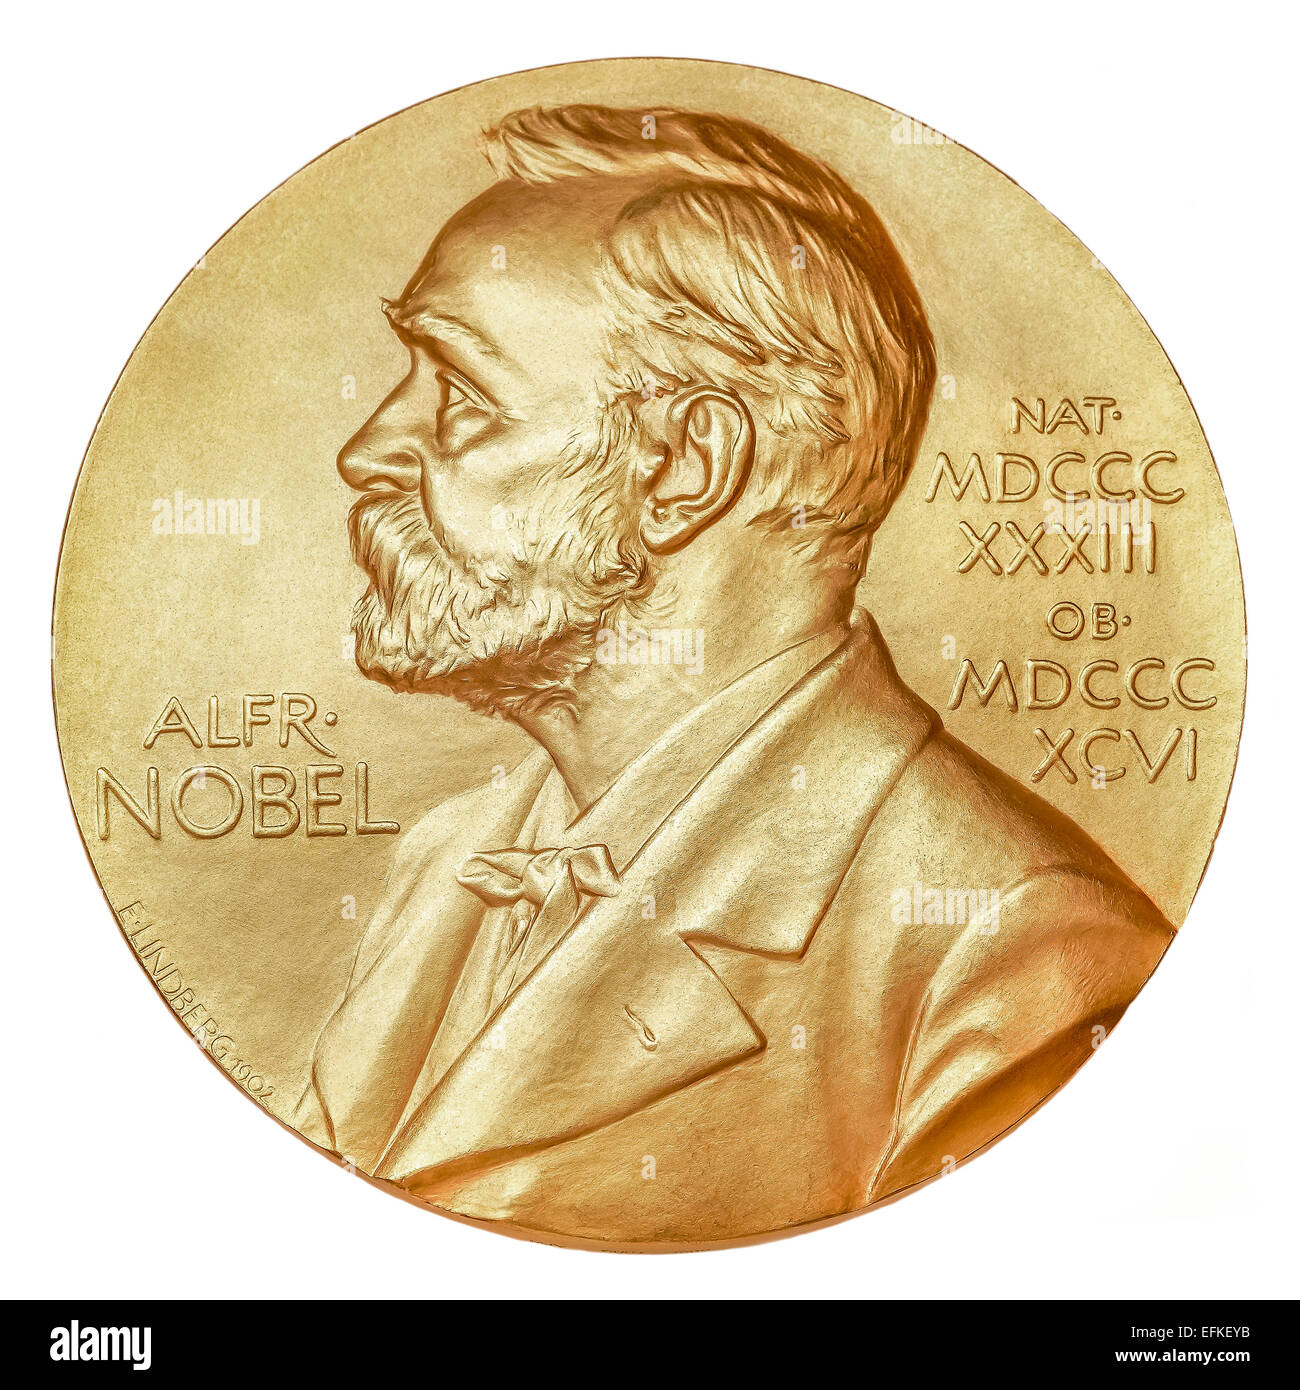 Nobel Prize medal cut out cutout isolated on a white background Stock Photo